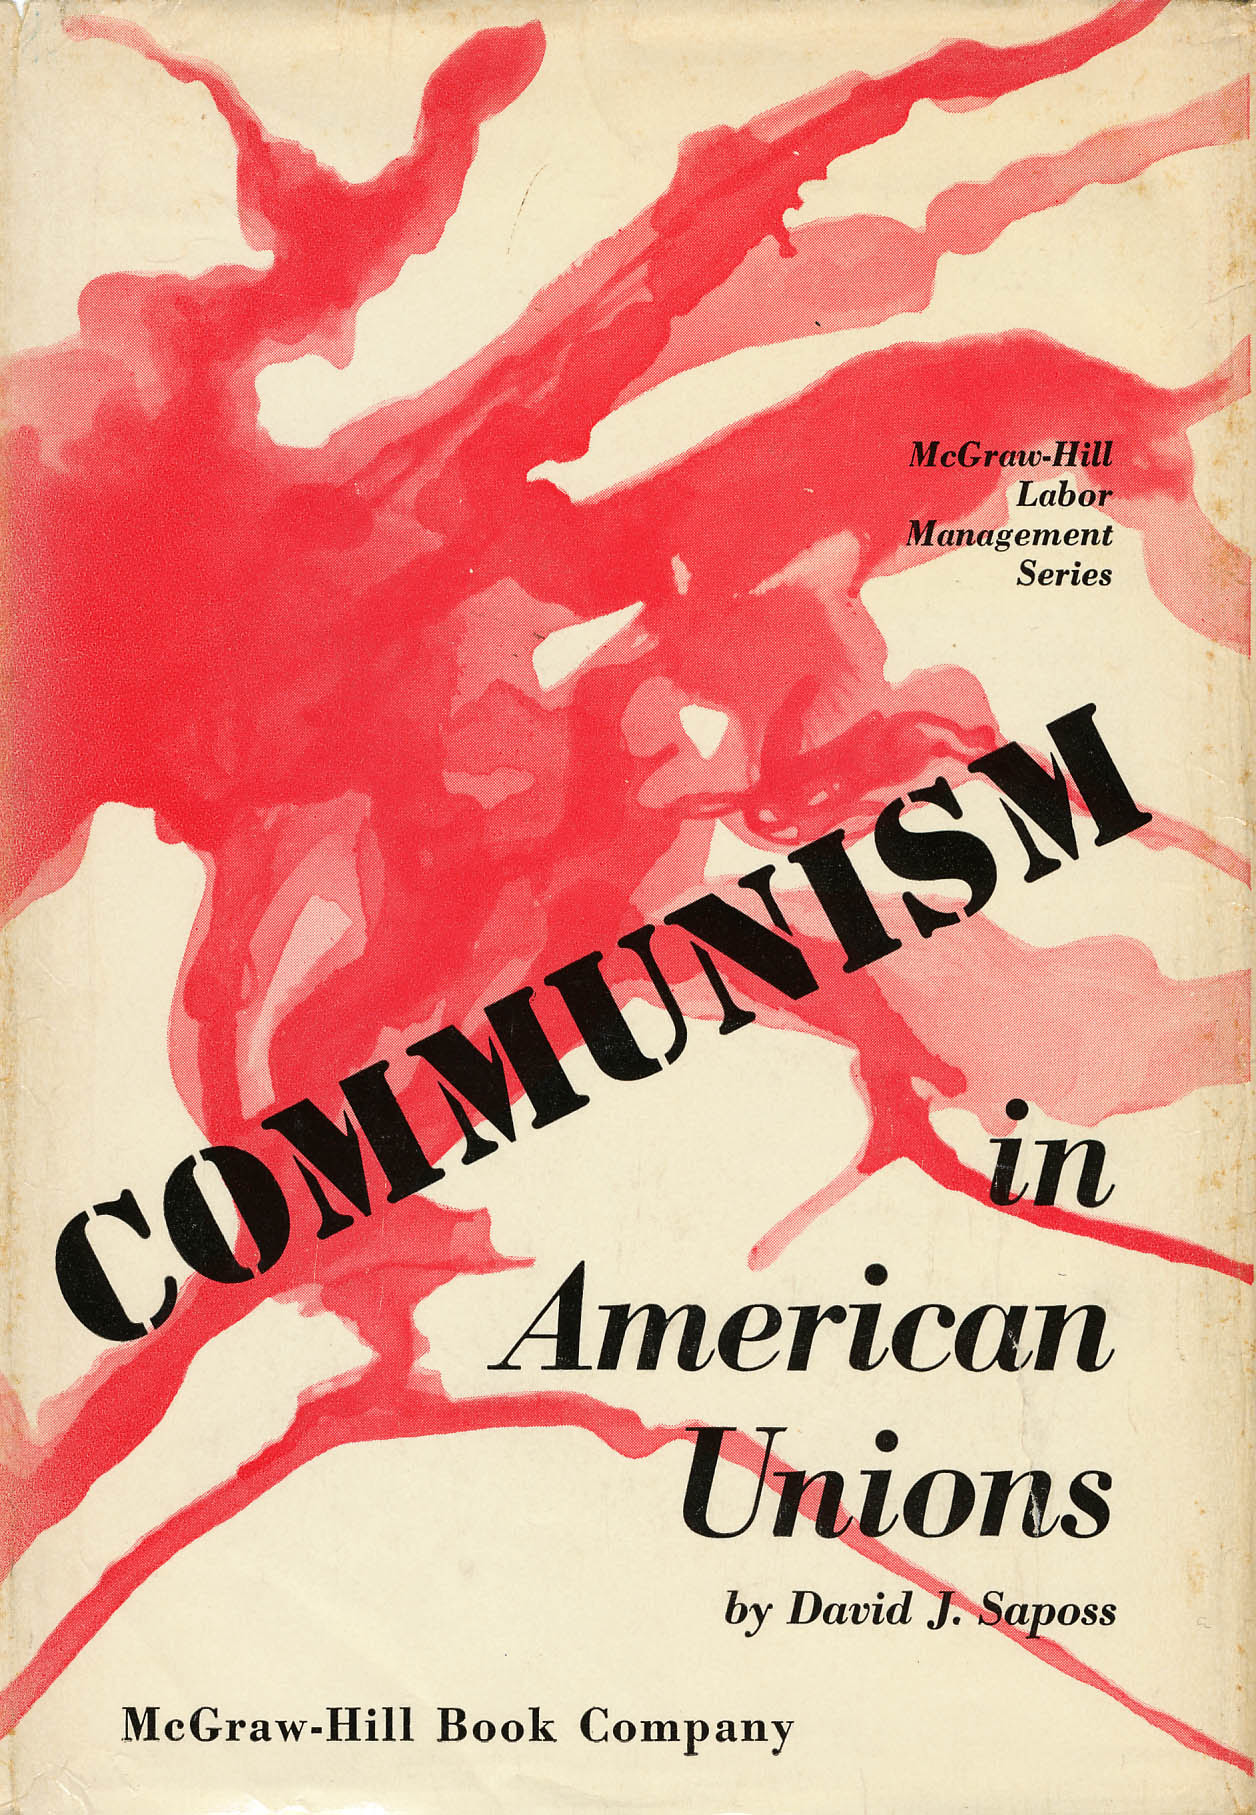 http://specialcollections.files.wordpress.com/2009/02/communism_unions.jpg